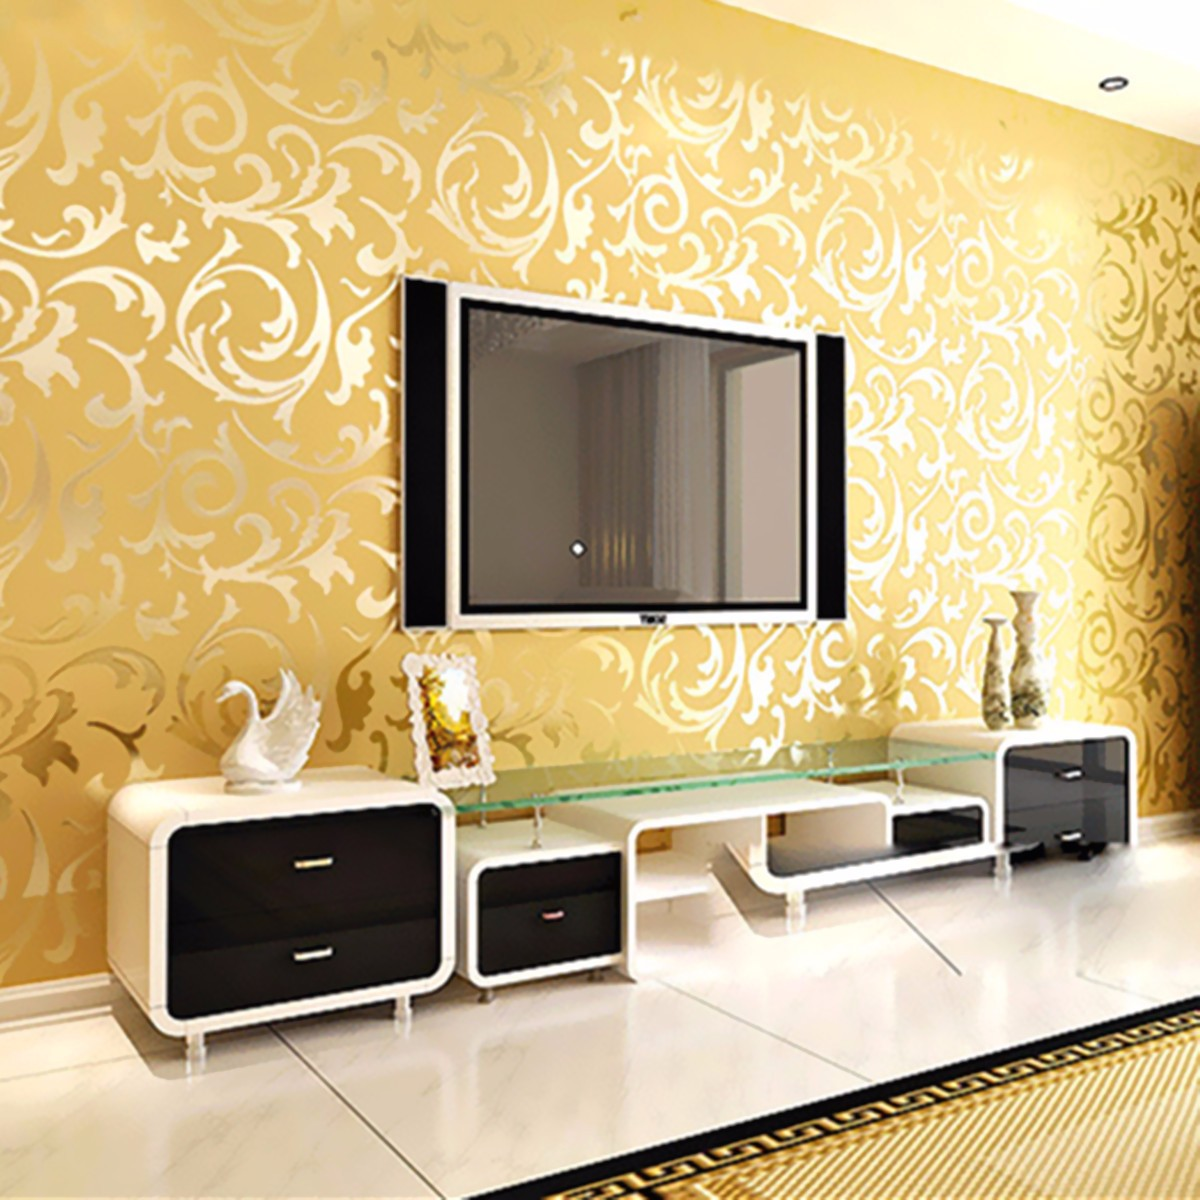 Wallpaper Roll Damask Textured Embossed Home Decor 10m